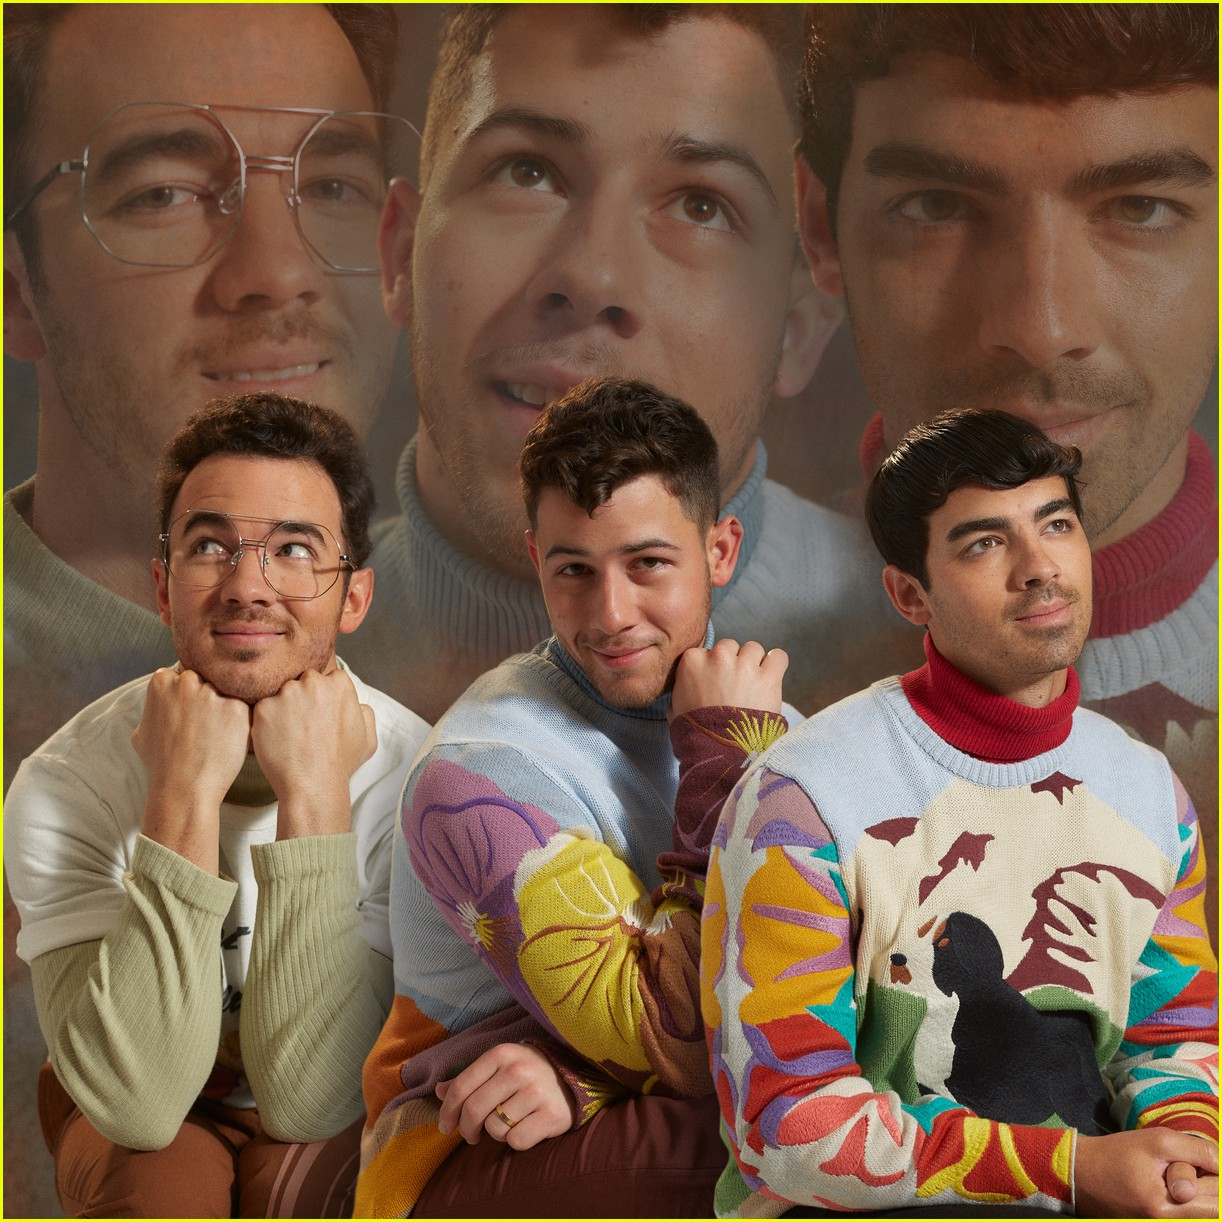 jonas brothers paper magzazine cover 03